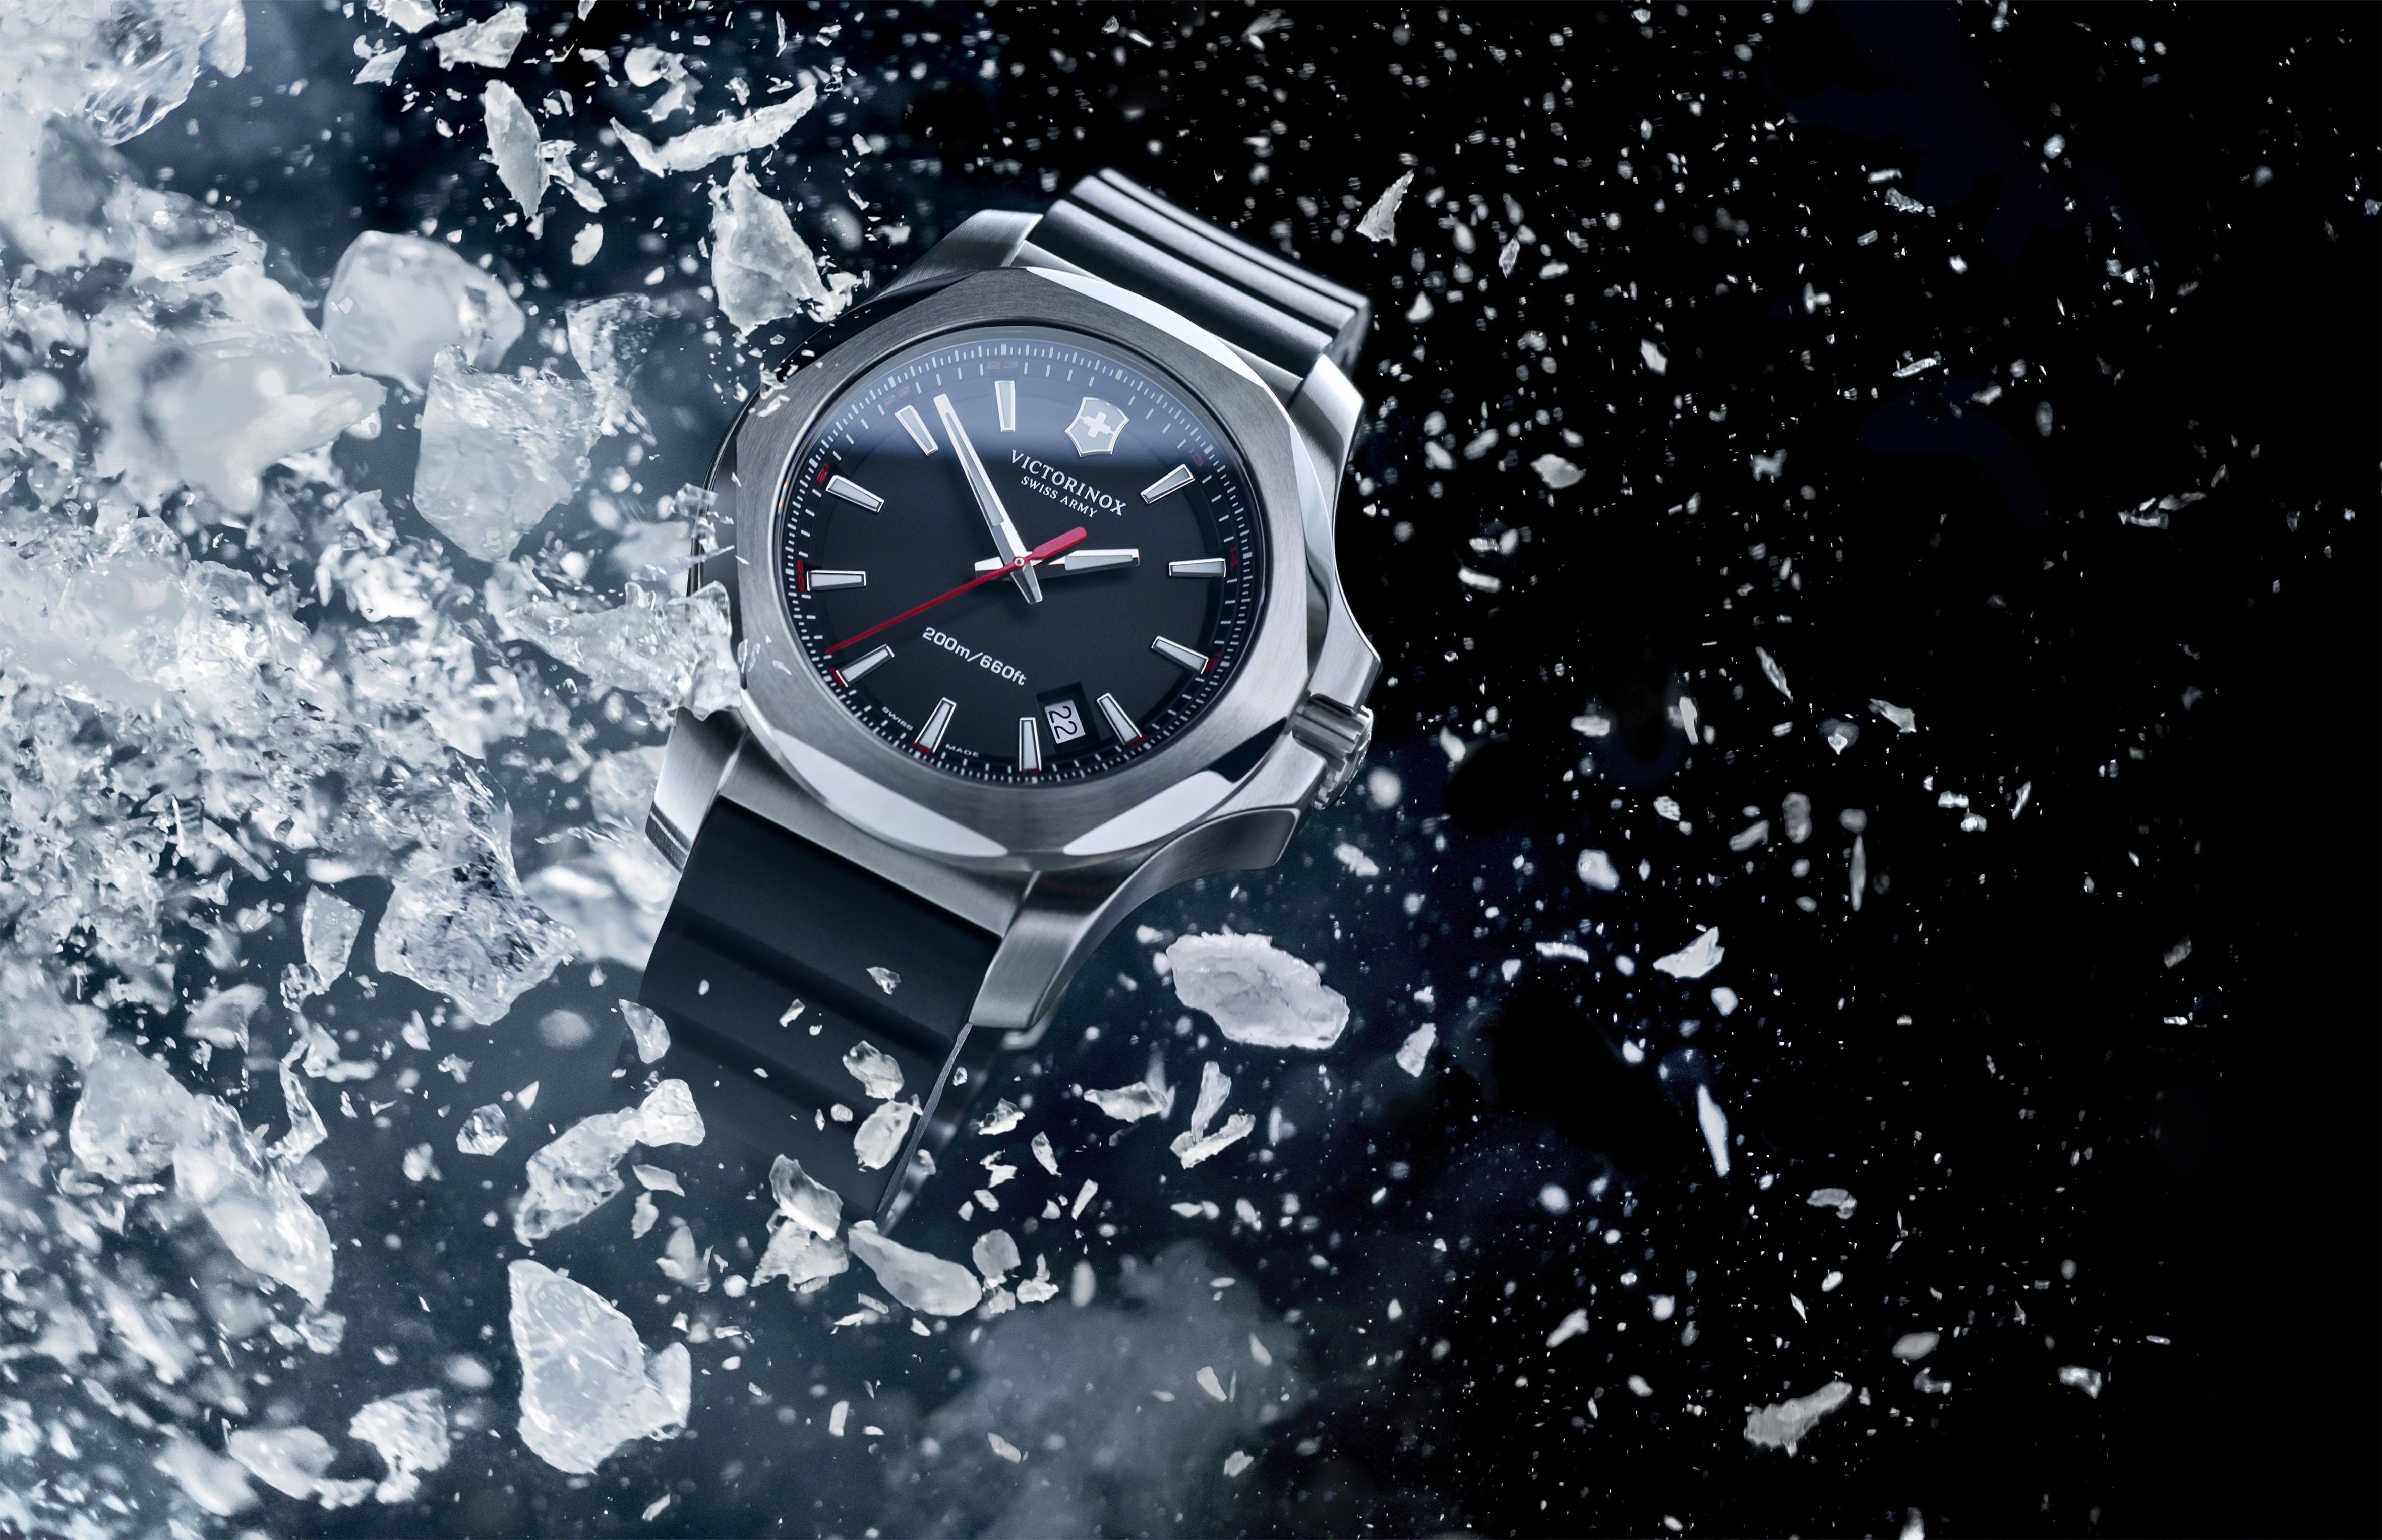 Victorinox-inox-watch-black